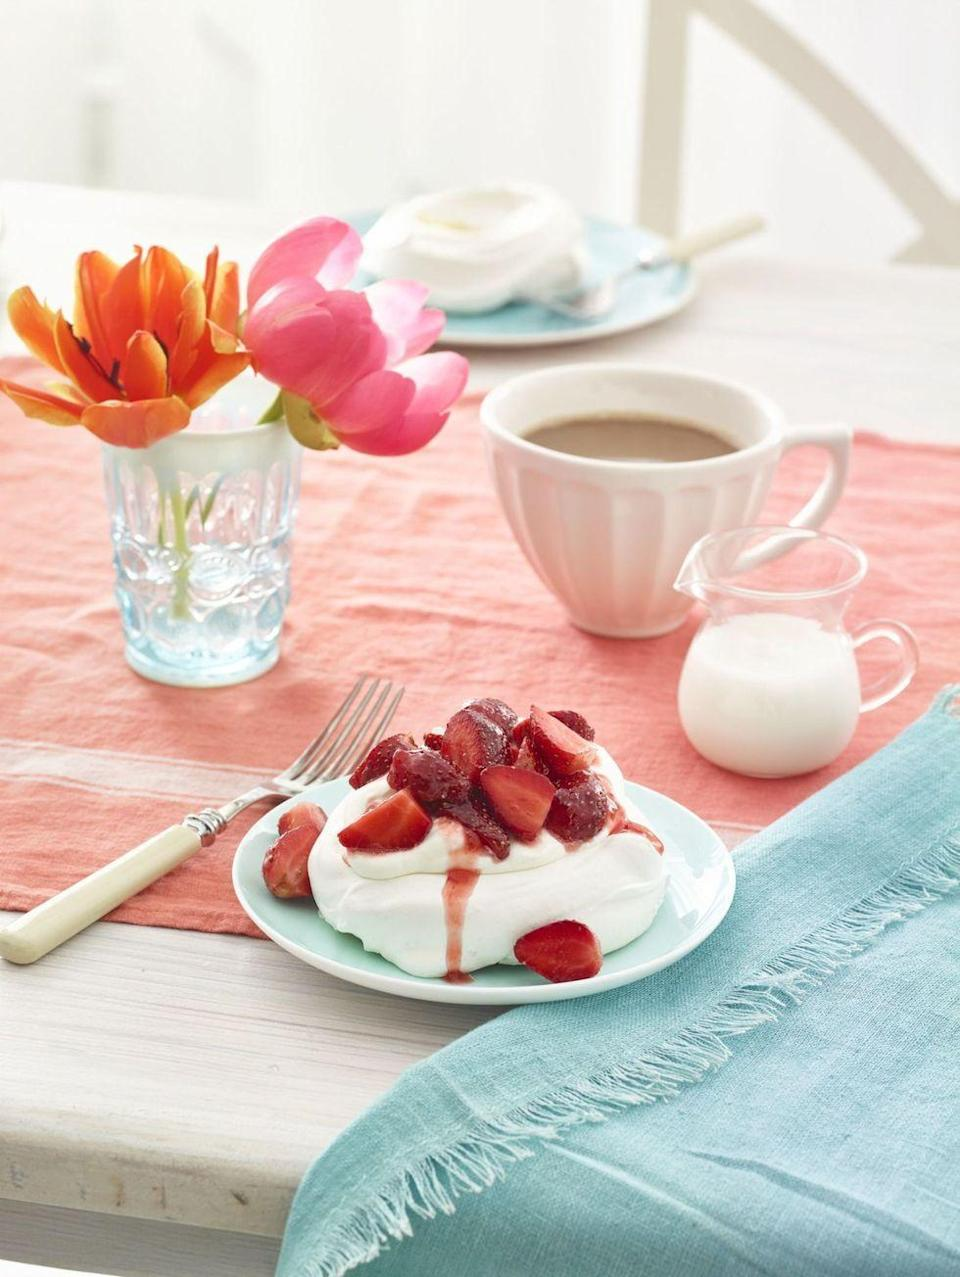 """<p>Pavlovas are a dessert that always impress. Get ready to whip your merengue to perfection with this tasty summer dessert. </p><p><em><strong><a href=""""https://www.womansday.com/food-recipes/food-drinks/recipes/a54431/pavlovas-with-strawberries-and-cream-recipe/"""" rel=""""nofollow noopener"""" target=""""_blank"""" data-ylk=""""slk:Get the Pavlovas with Strawberries and Cream recipe."""" class=""""link rapid-noclick-resp"""">Get the Pavlovas with Strawberries and Cream recipe. </a></strong></em></p>"""